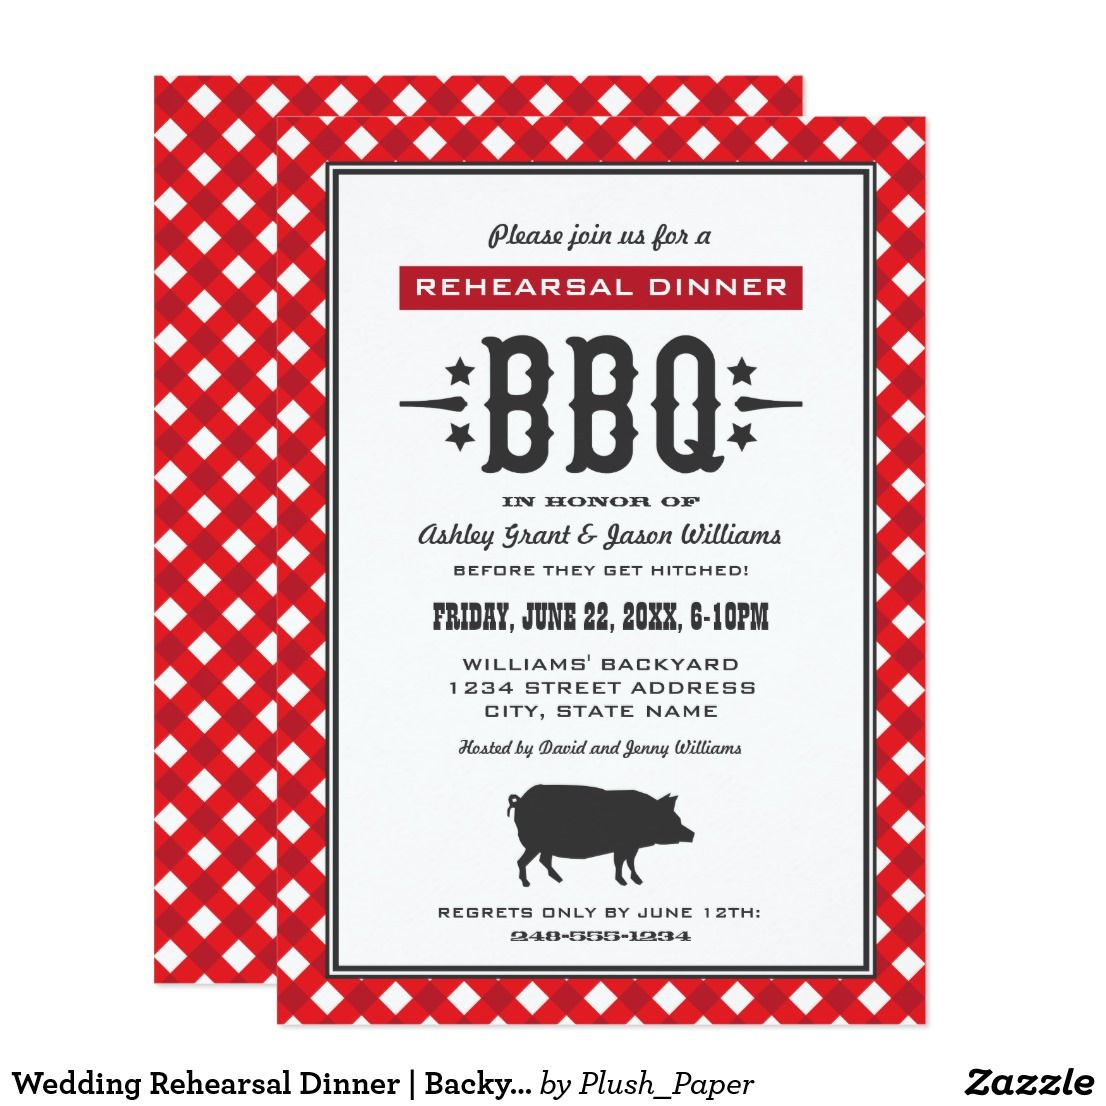 Wedding Rehearsal Dinner | Backyard BBQ Theme Card Casual BBQ ...